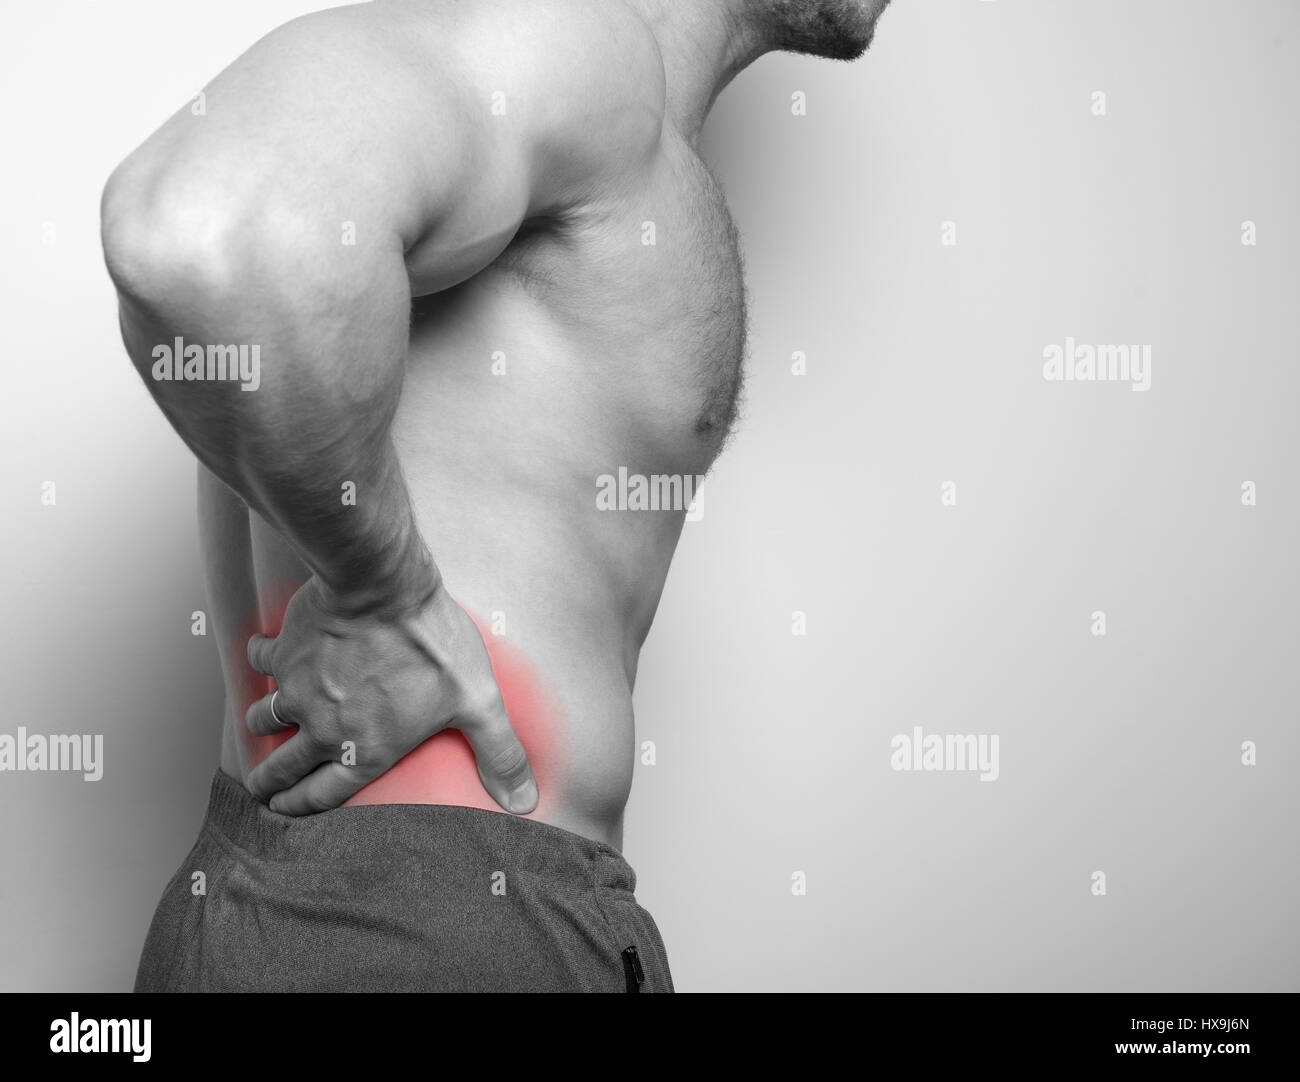 pain in the back of the athlete - Stock Image